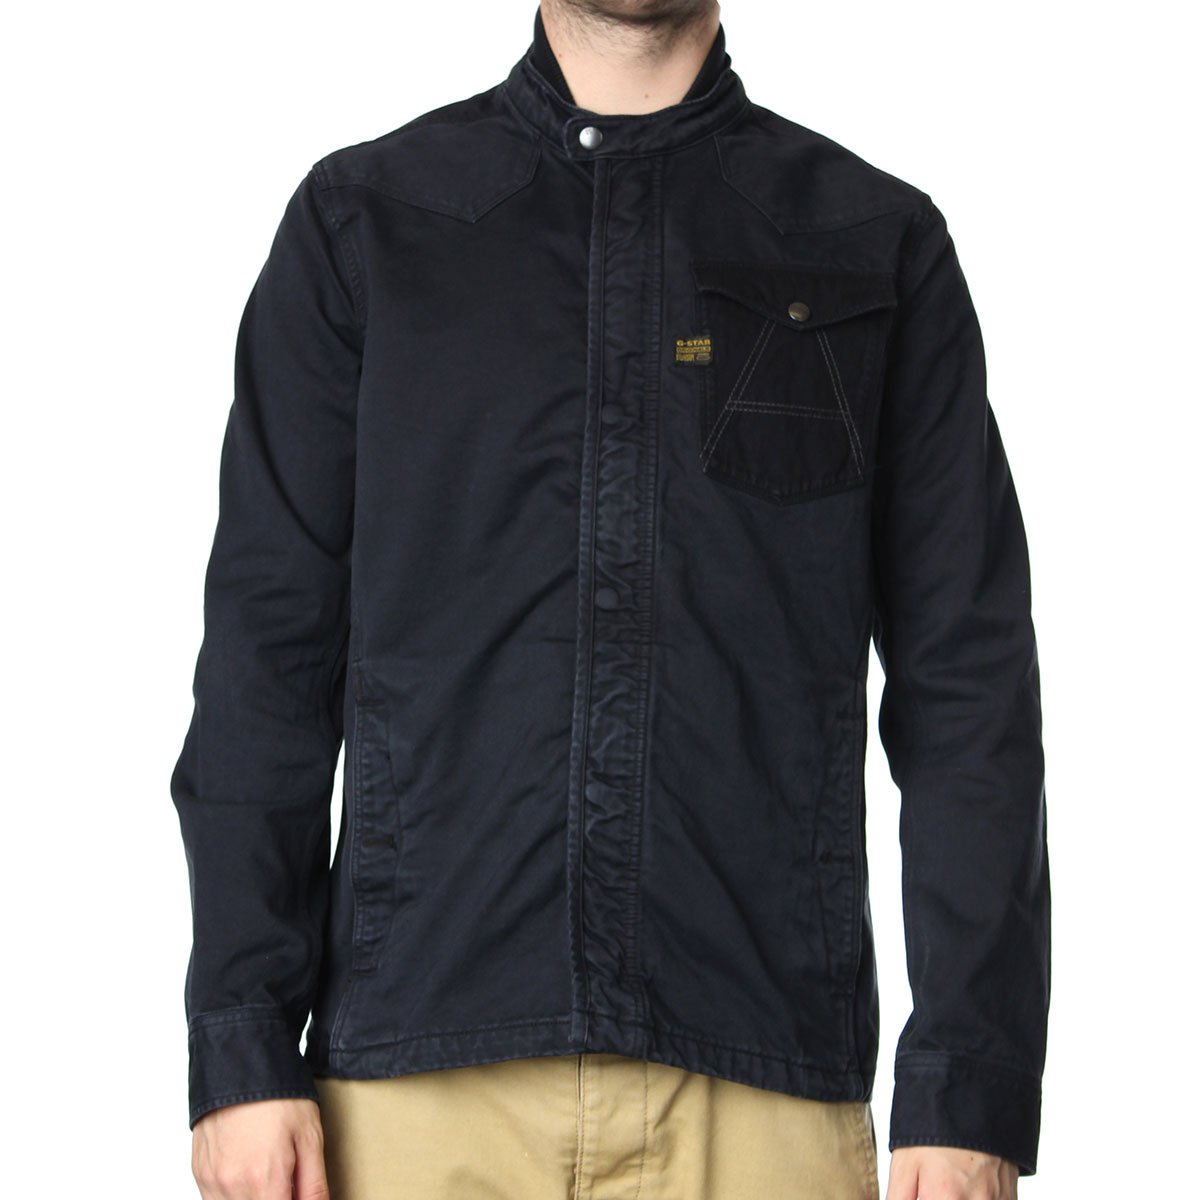 g star a crotch overshirt jacket g star from the menswear site uk. Black Bedroom Furniture Sets. Home Design Ideas